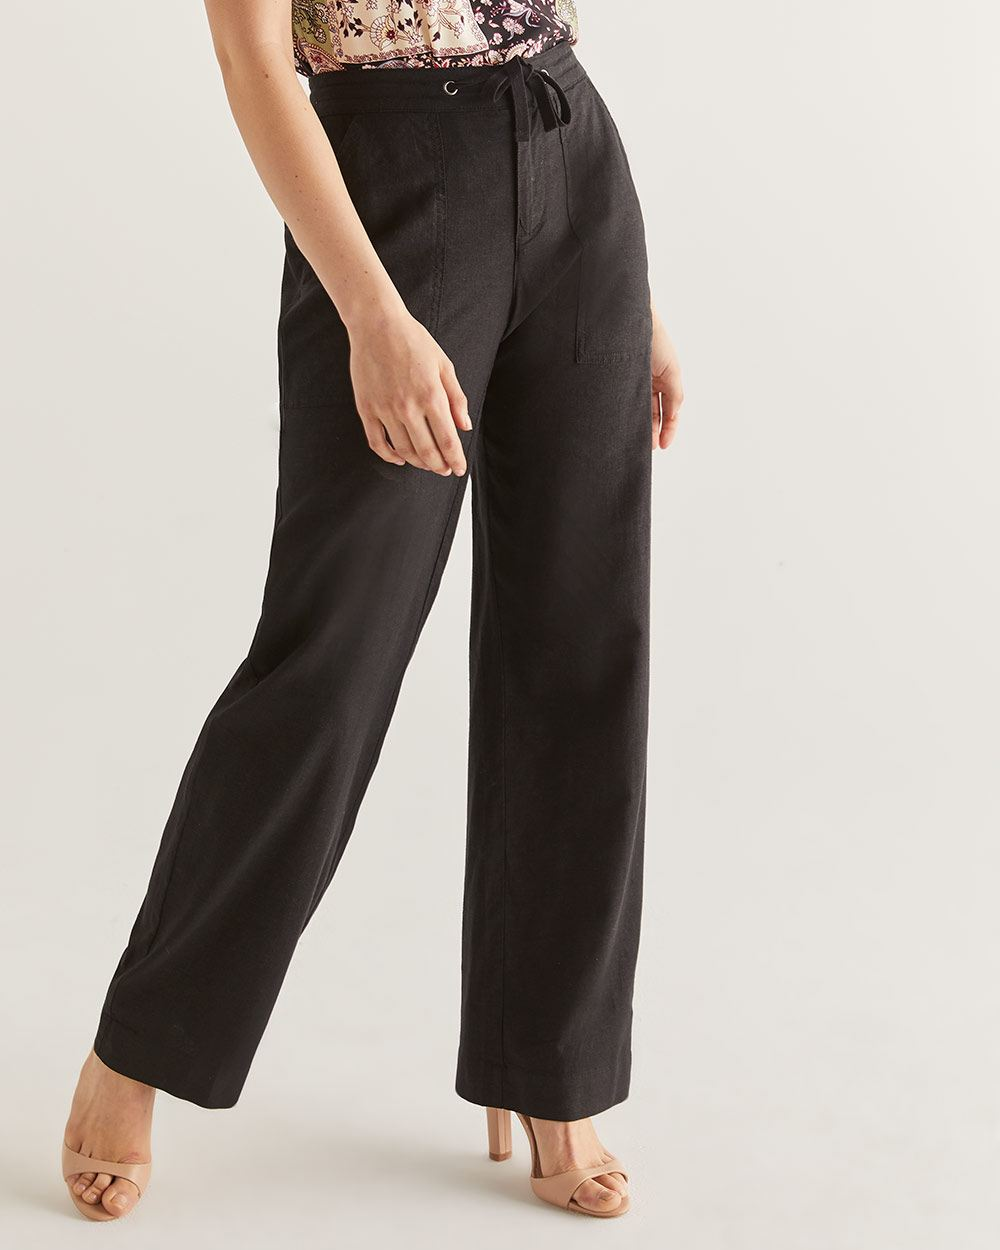 Linen-Blend Wide Leg Pants - Tall